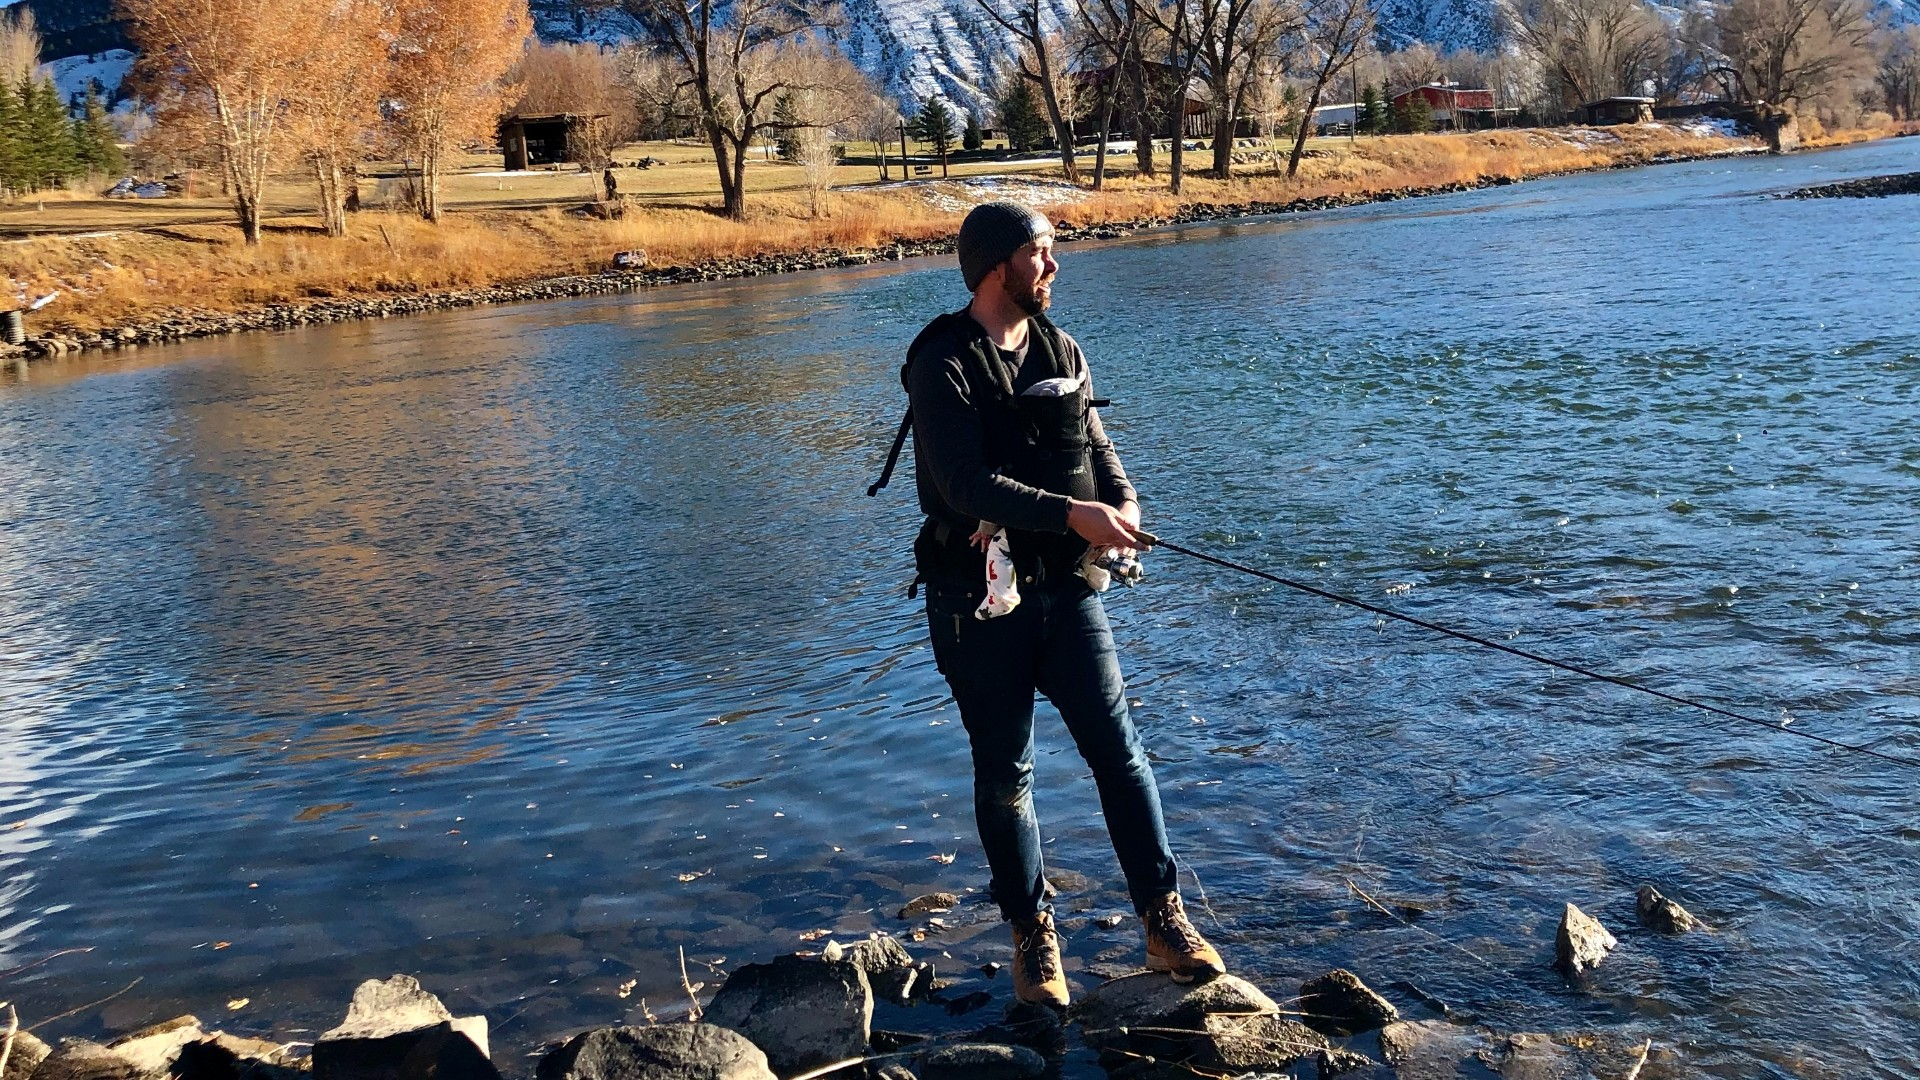 Boots in the icy water, baby in tow, fishing like a boss.